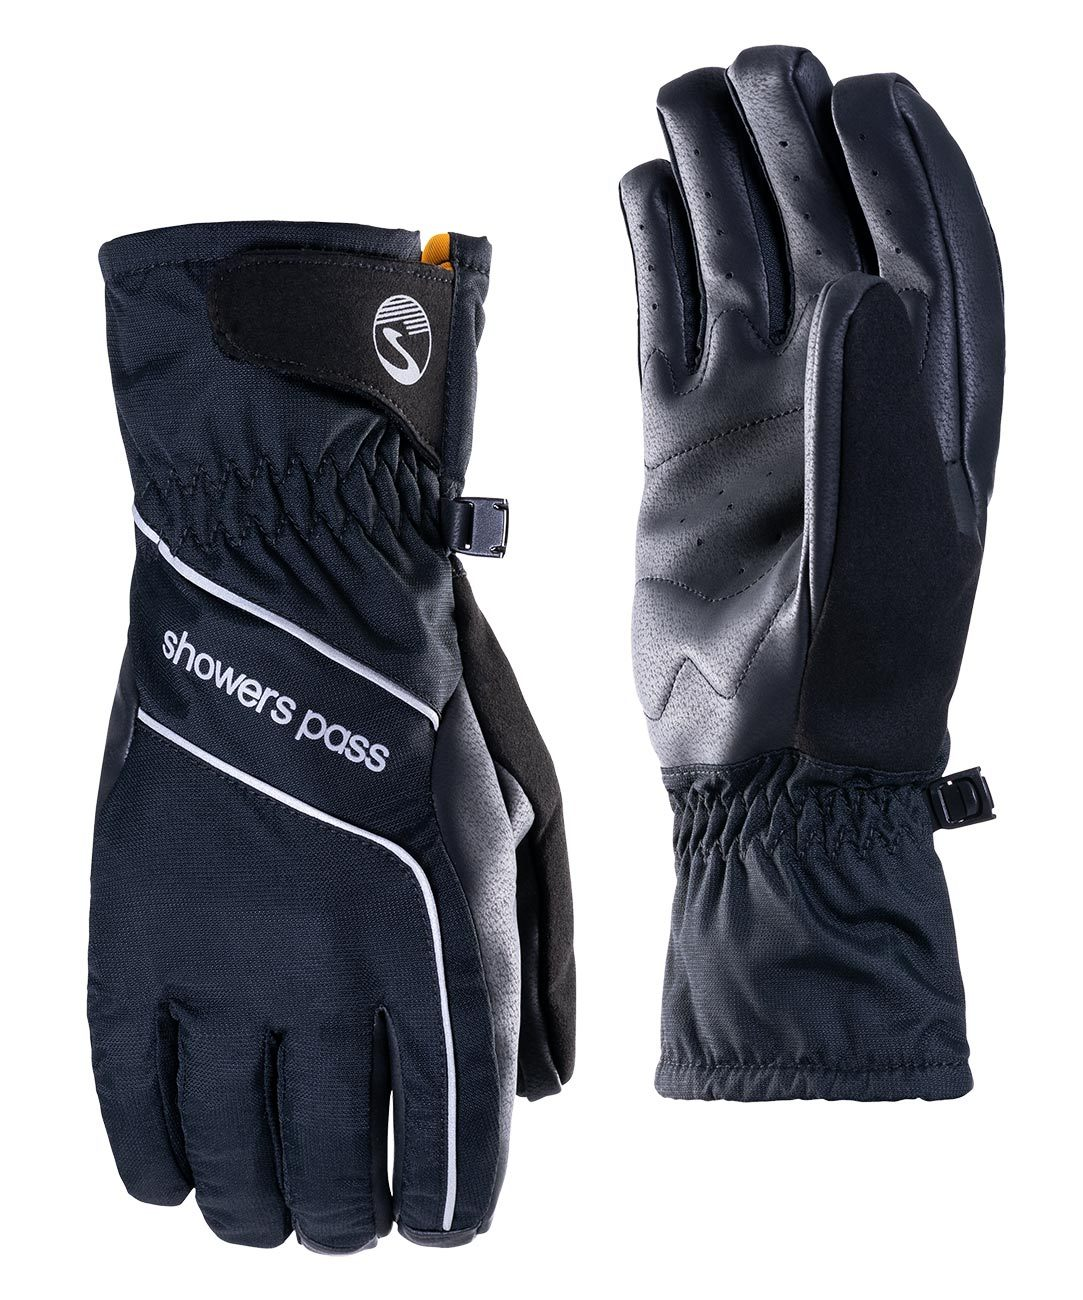 Women's Crosspoint Hardshell Waterproof Gloves